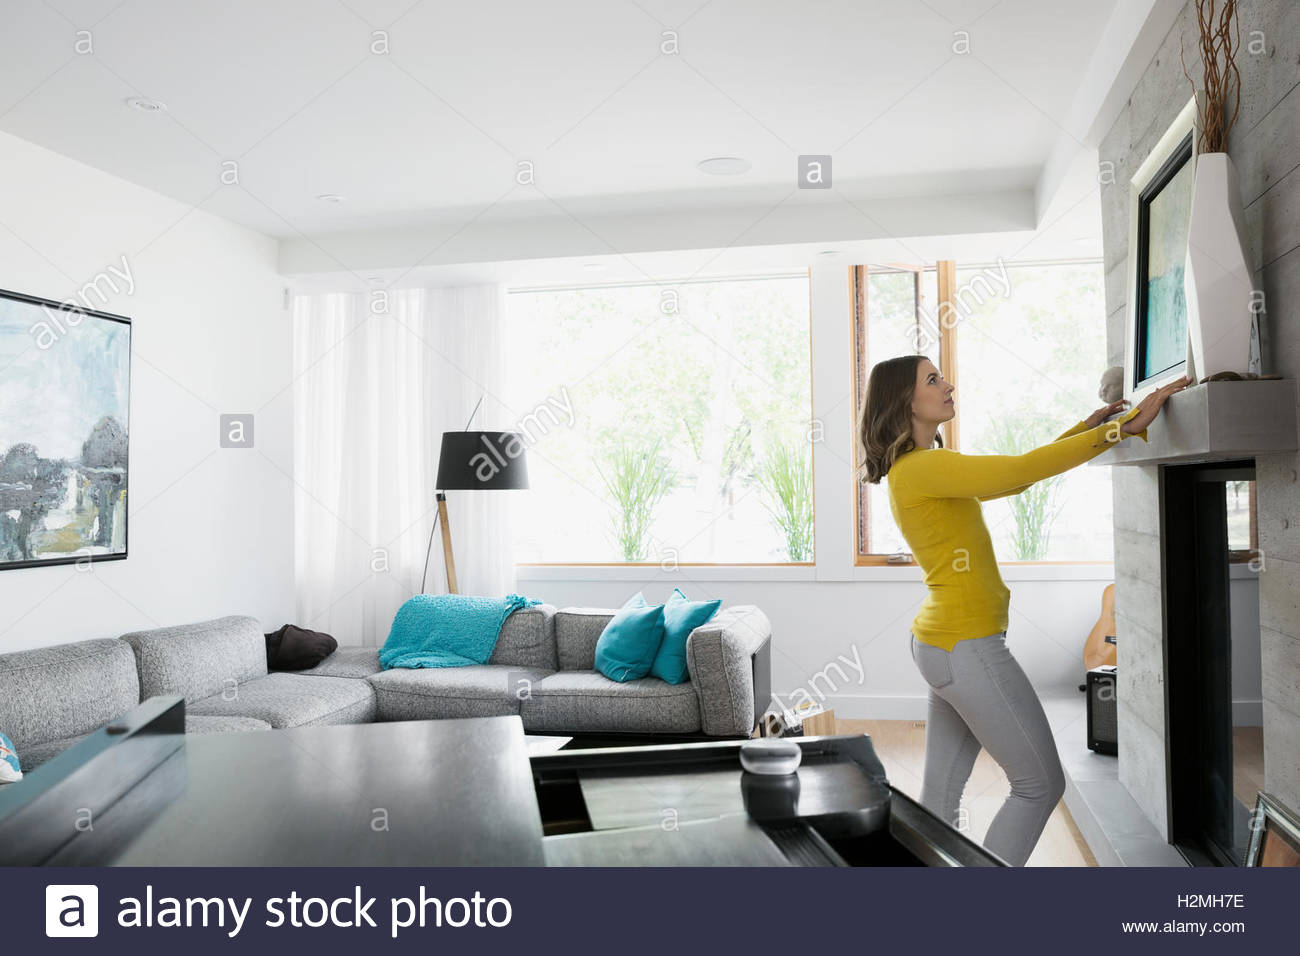 Hanging Painting Stock Photos & Hanging Painting Stock Images - Alamy